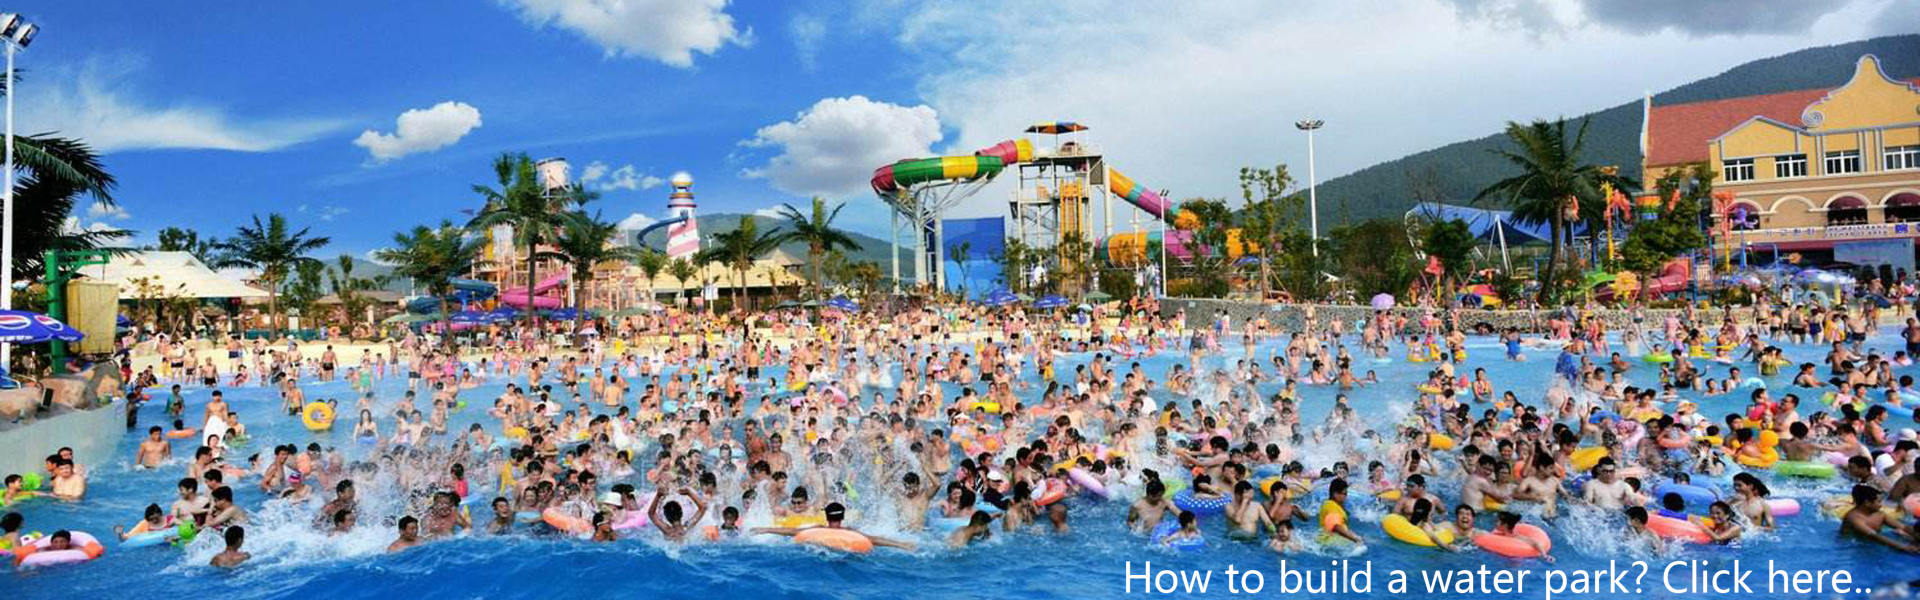 how to build a water park?xingjiangyuan